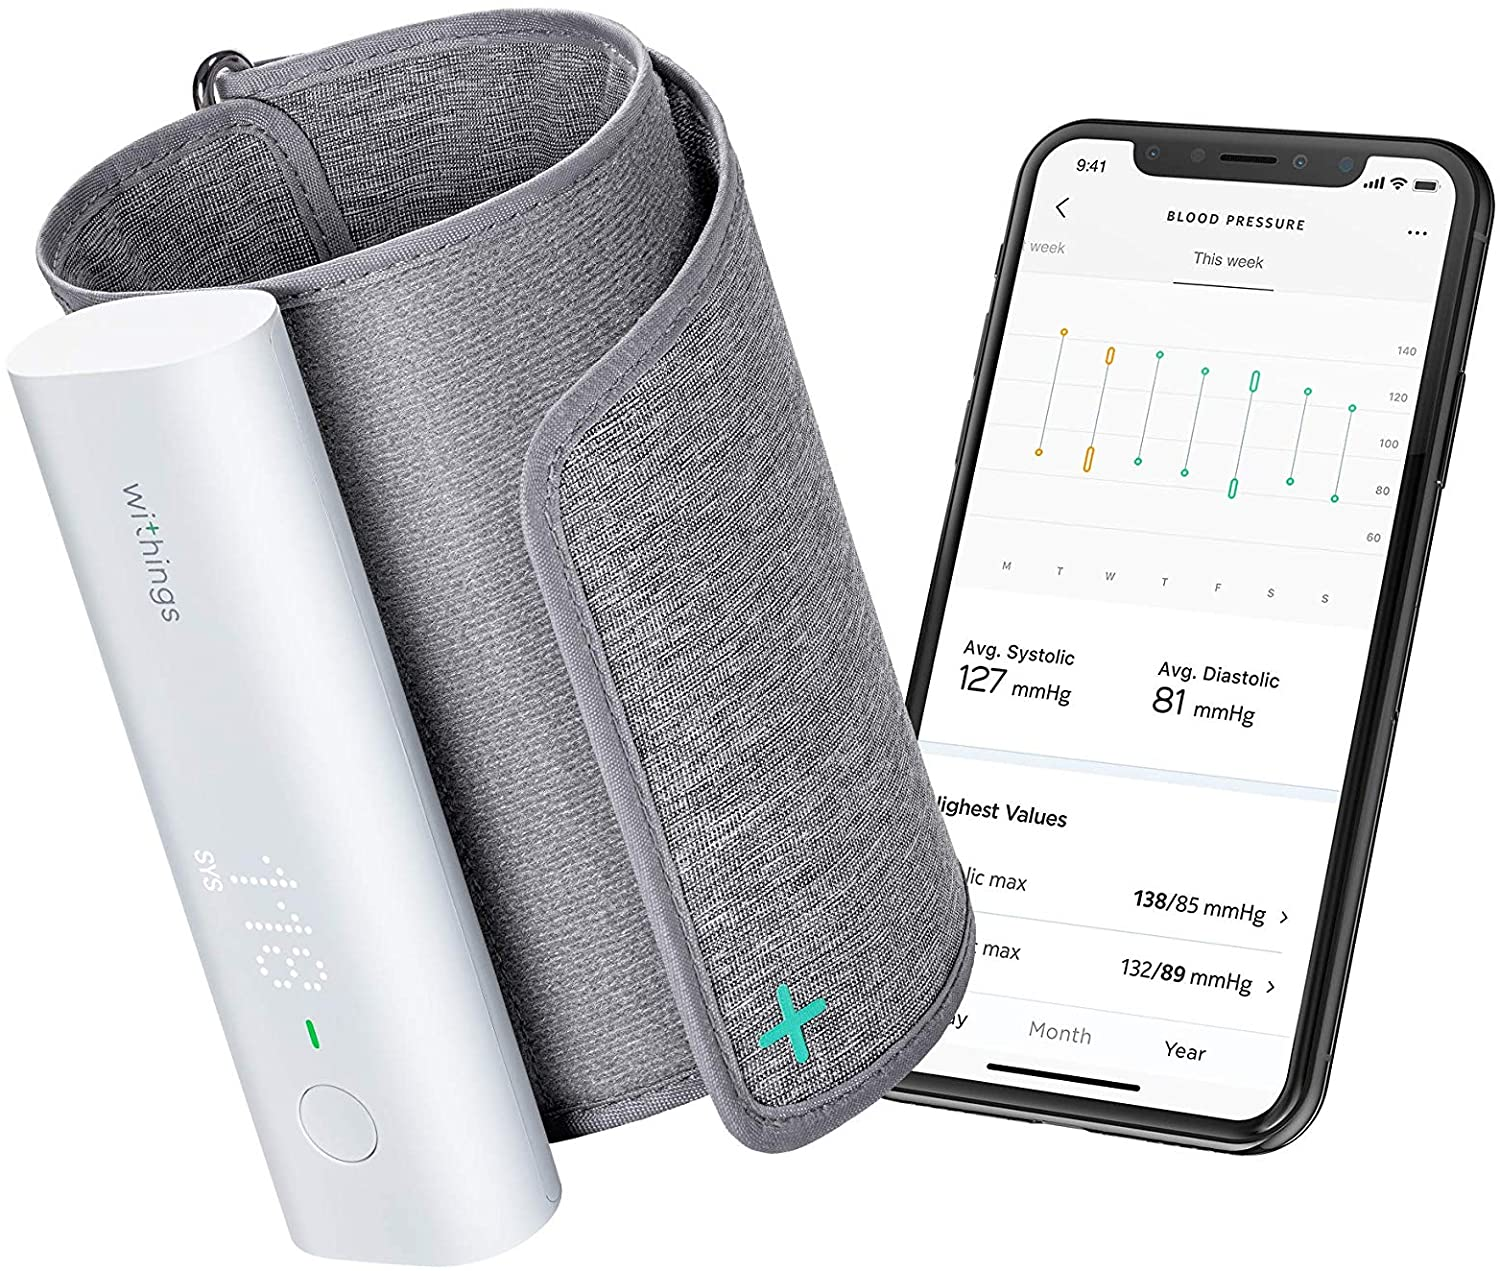 Withings Smart Blood Pressure Monitor Reviews